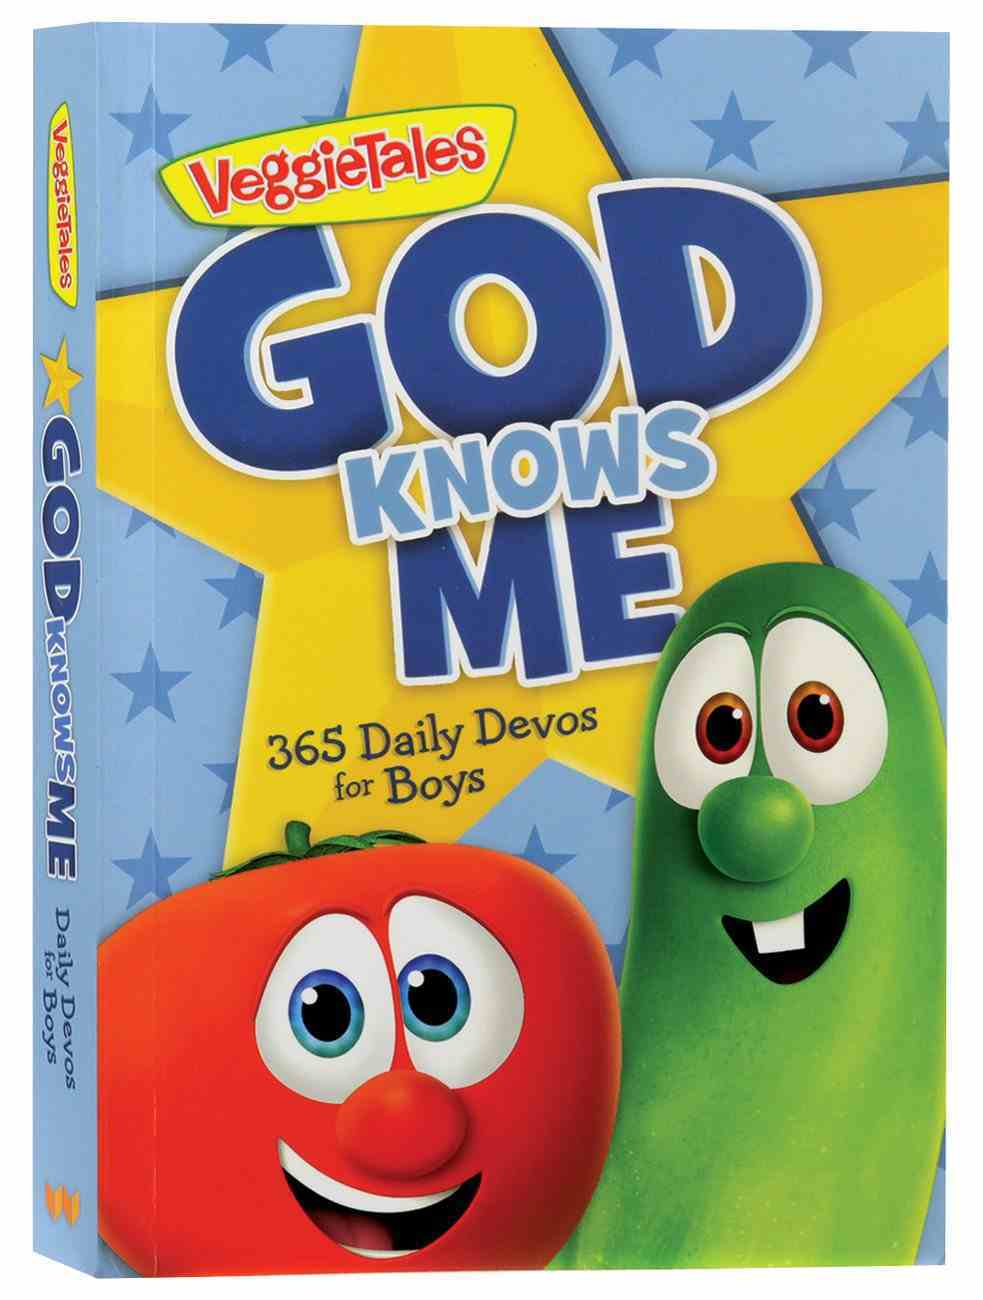 God Knows Me: 365 Daily Devos For Boys (Veggie Tales (Veggietales) Series) Paperback